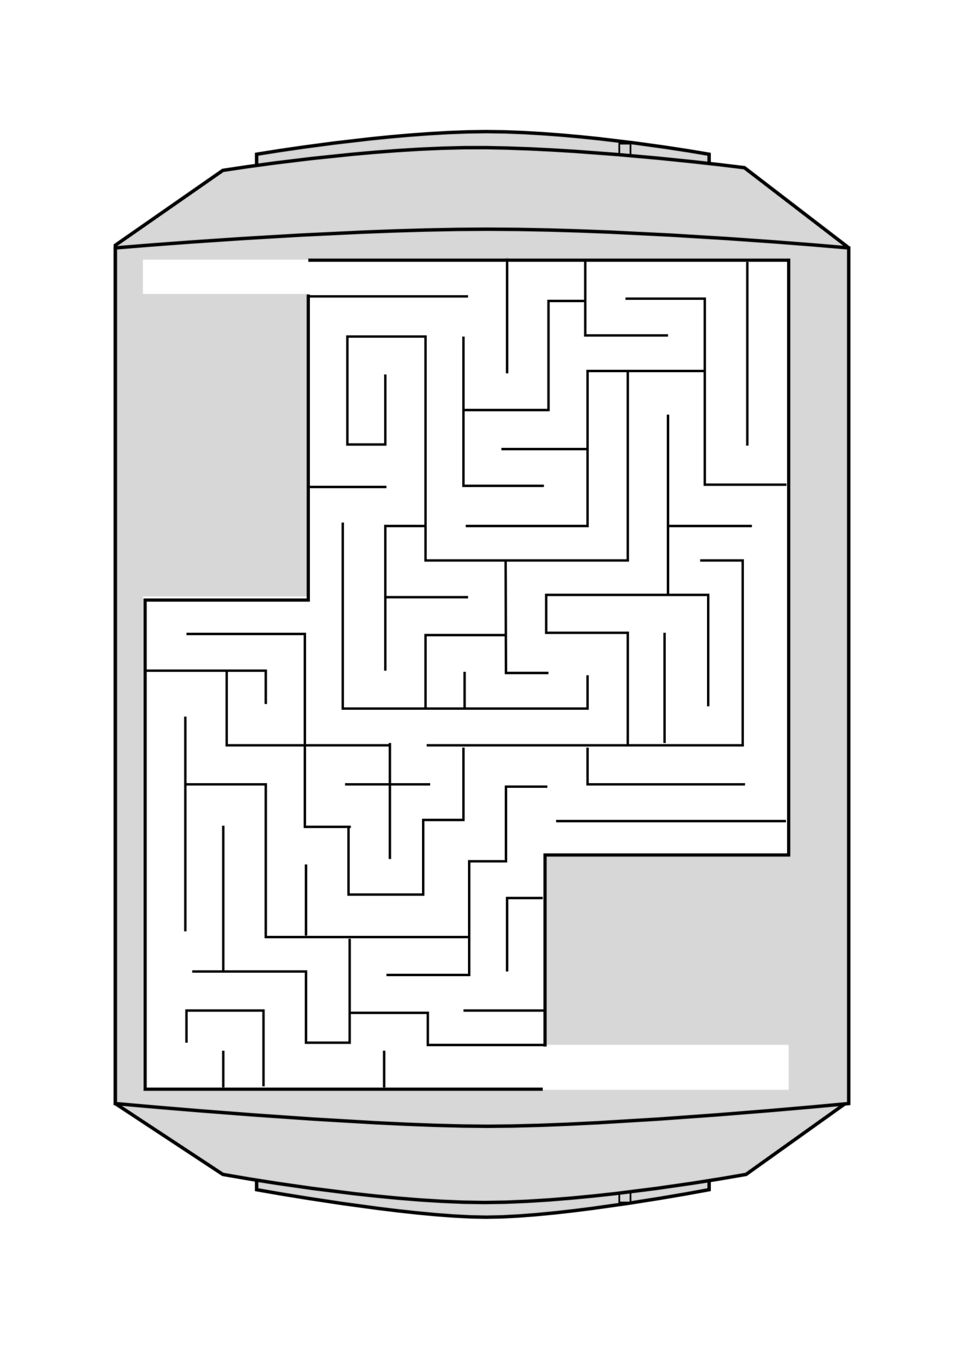 Shuttle Maze iss activity sheet p2